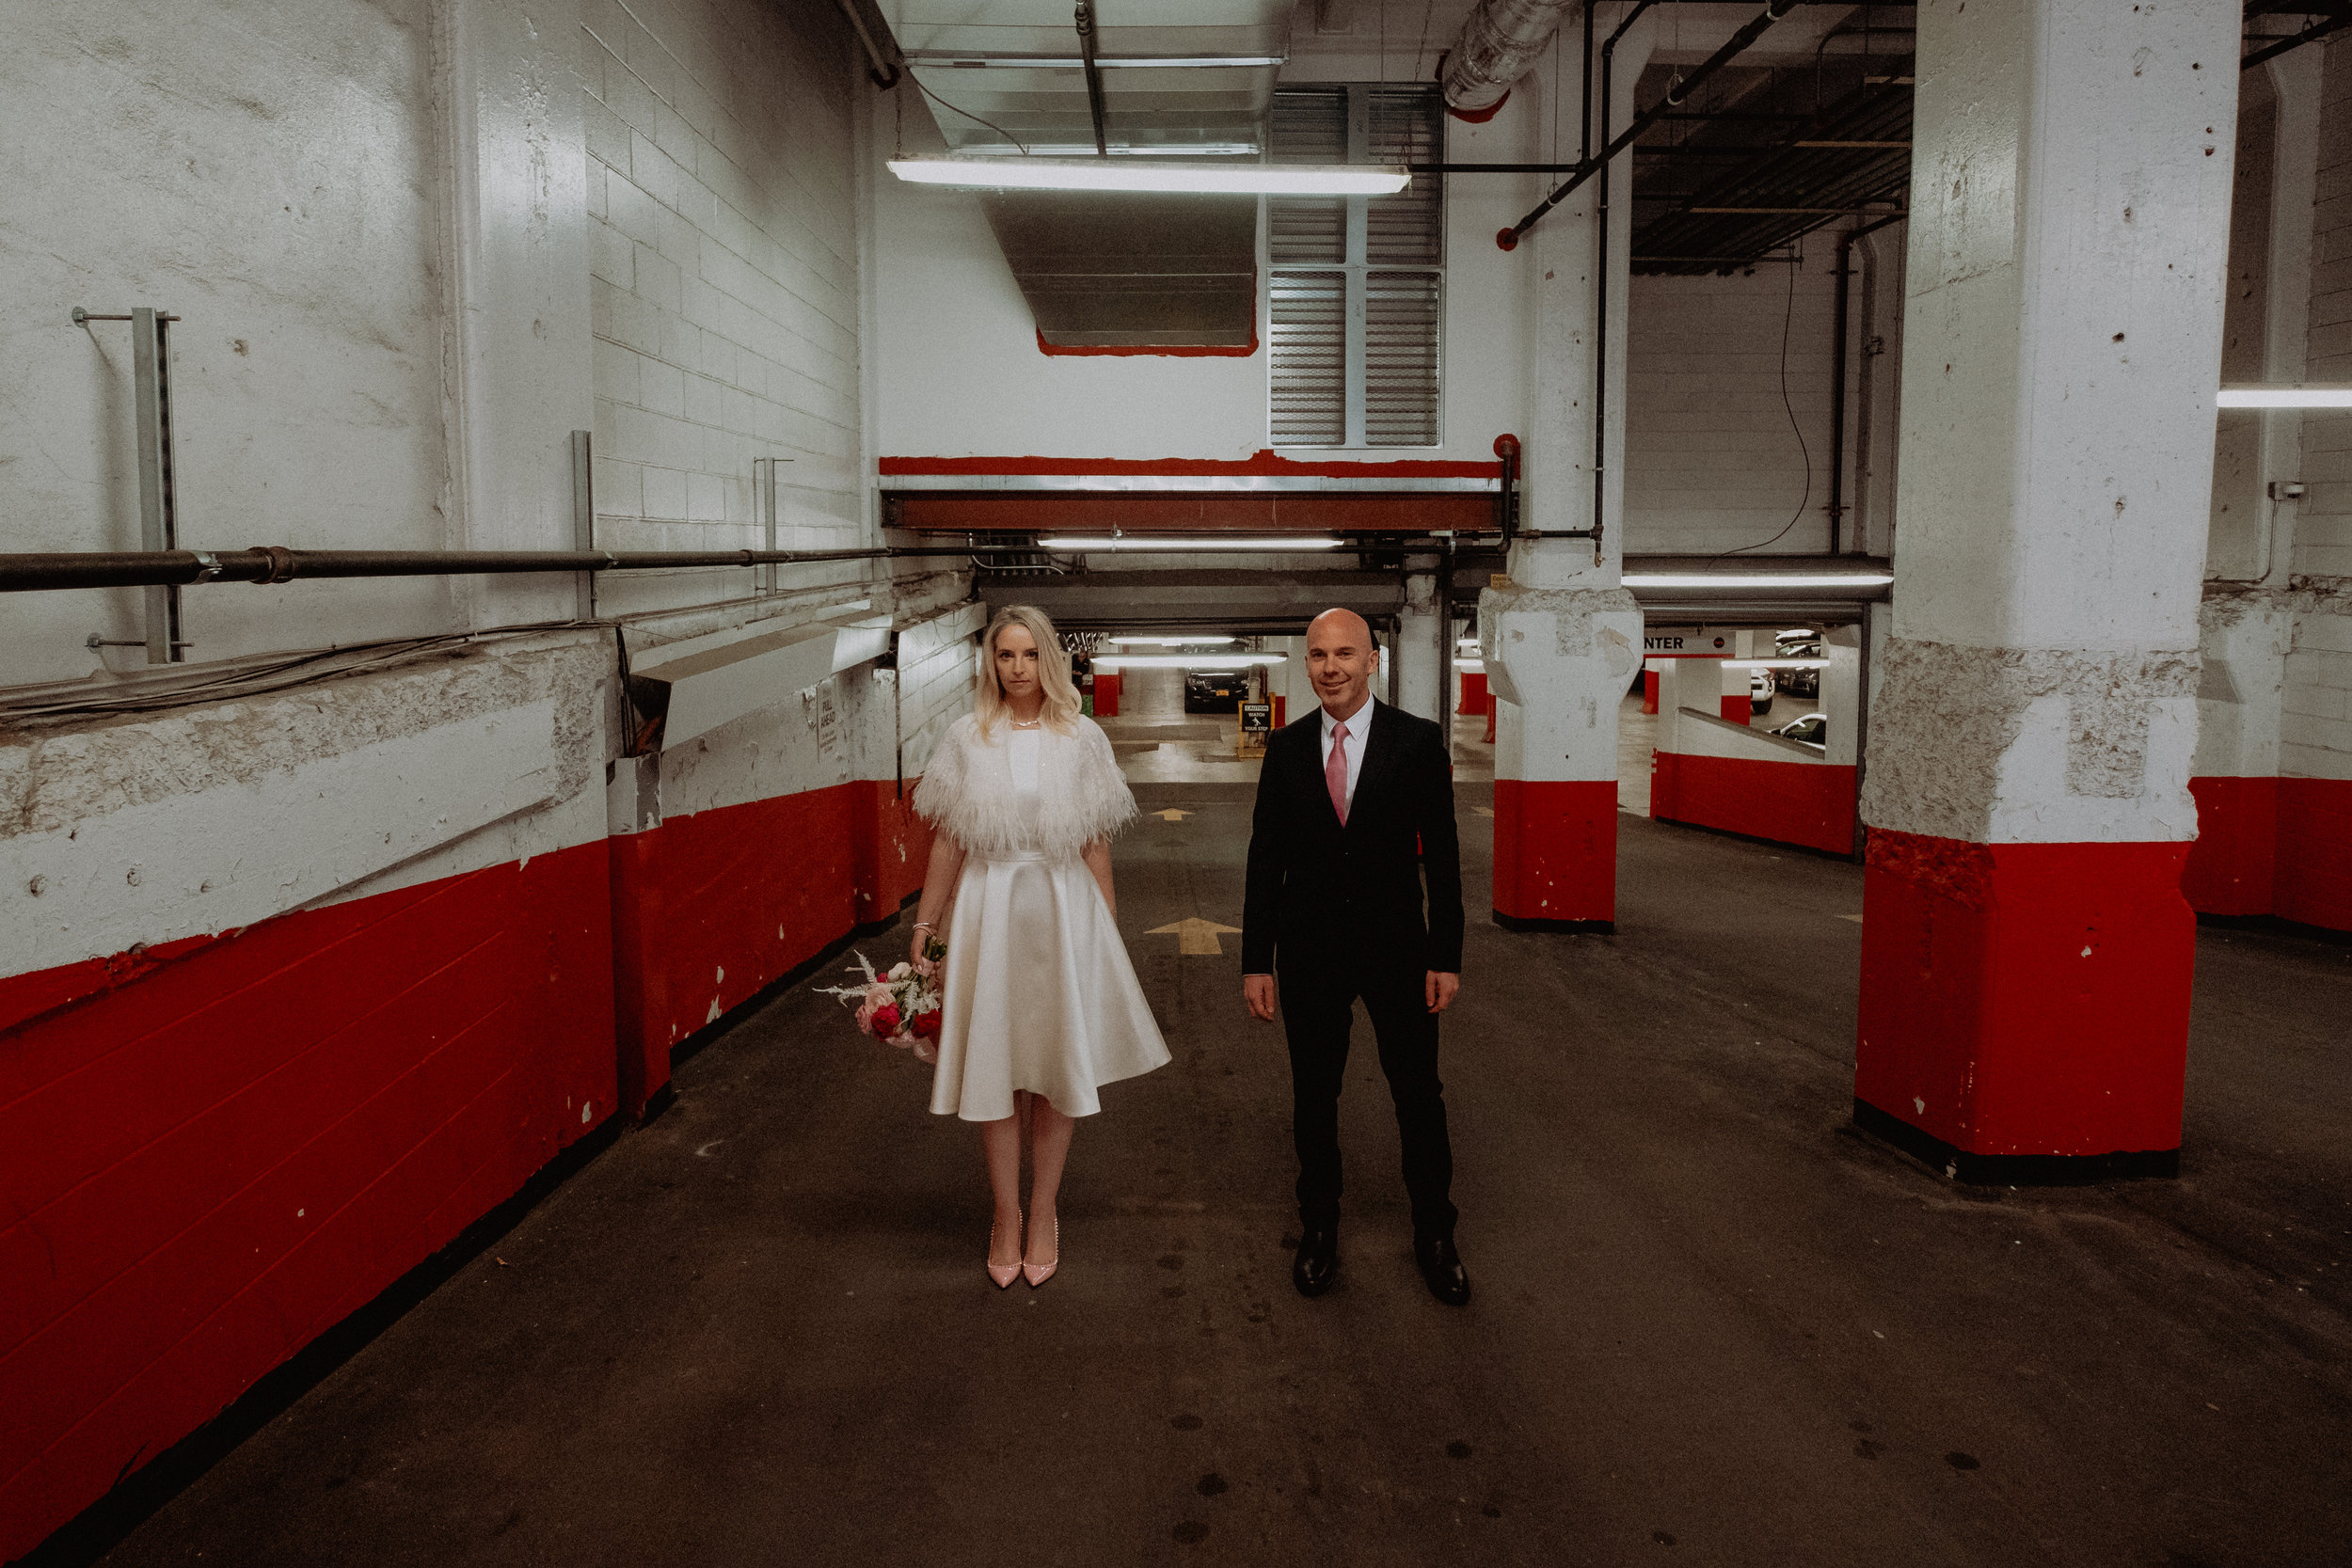 Brooklyn_City_Hall_Elopement_Photographer_Chellise_Michael_Photography236.JPG